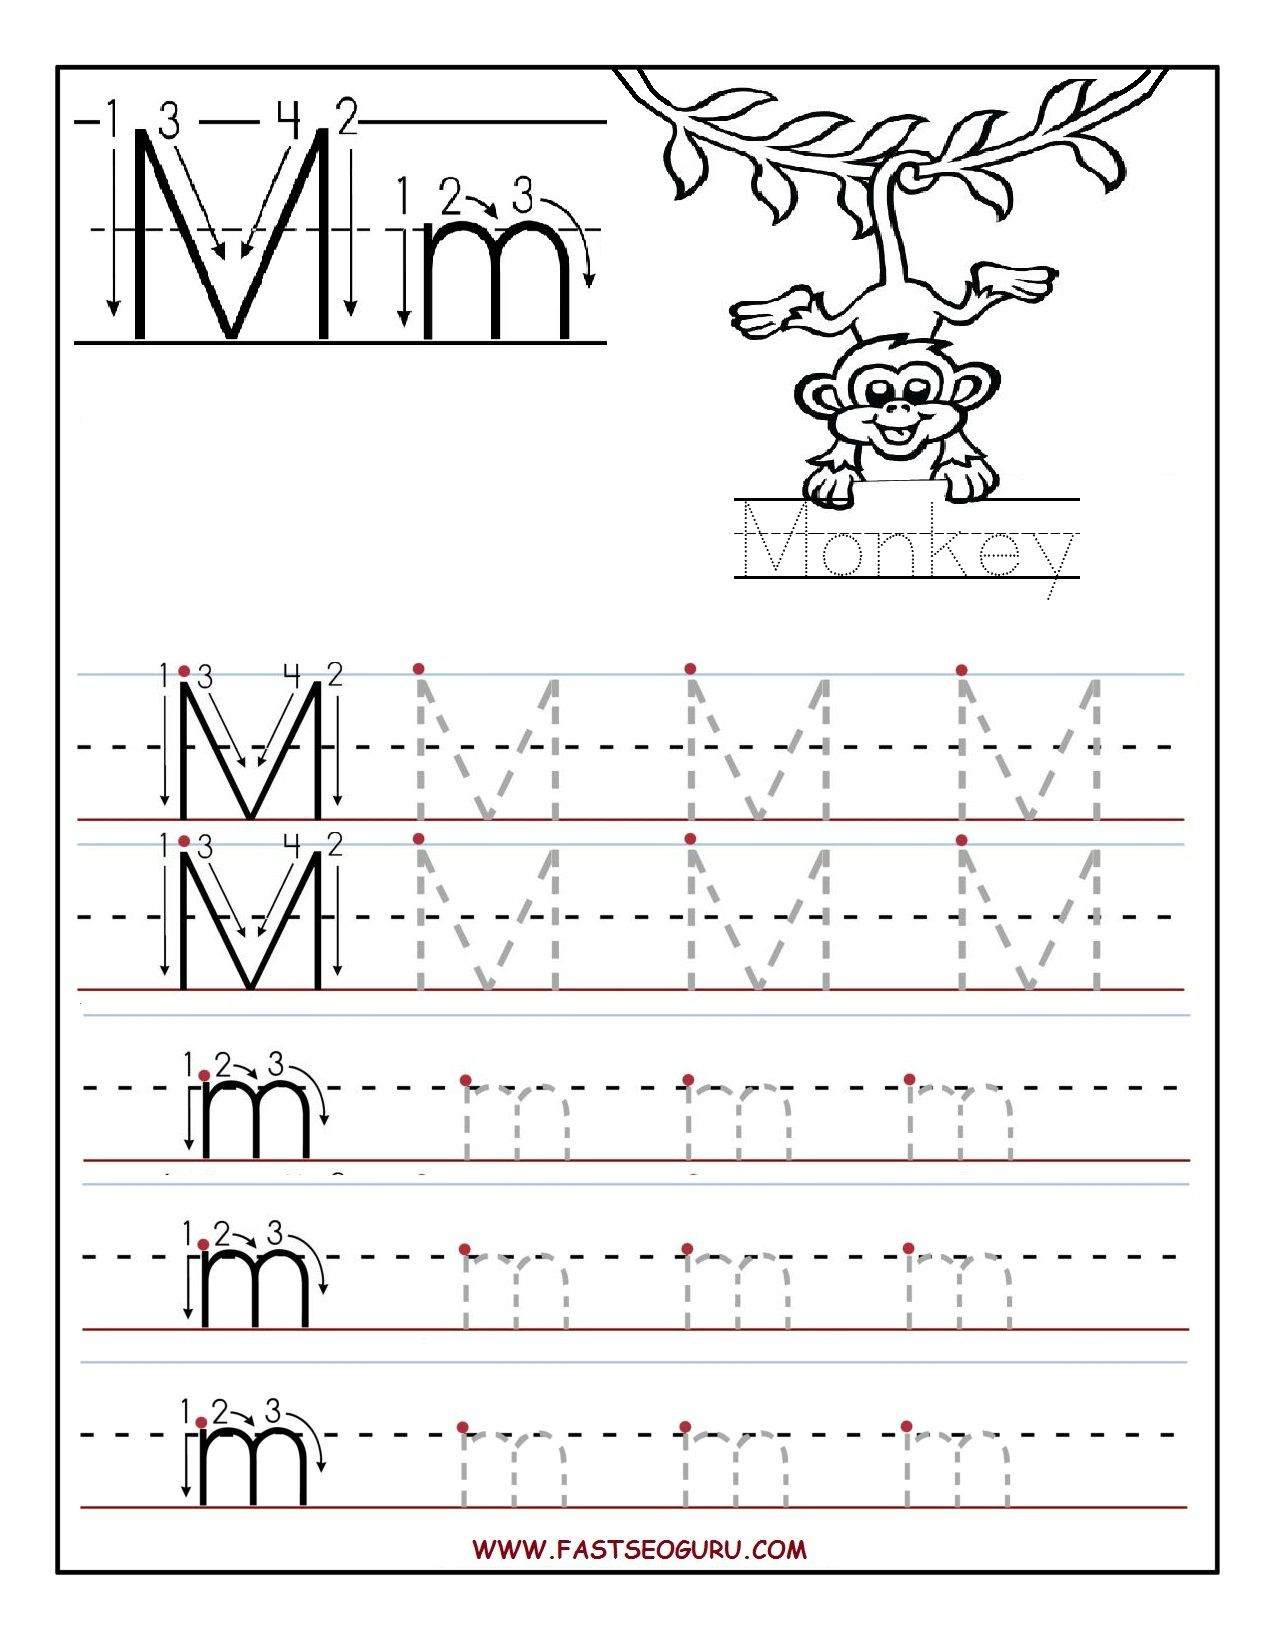 Printable Letter M Tracing Worksheets For Preschool in Letter M Worksheets For Toddlers